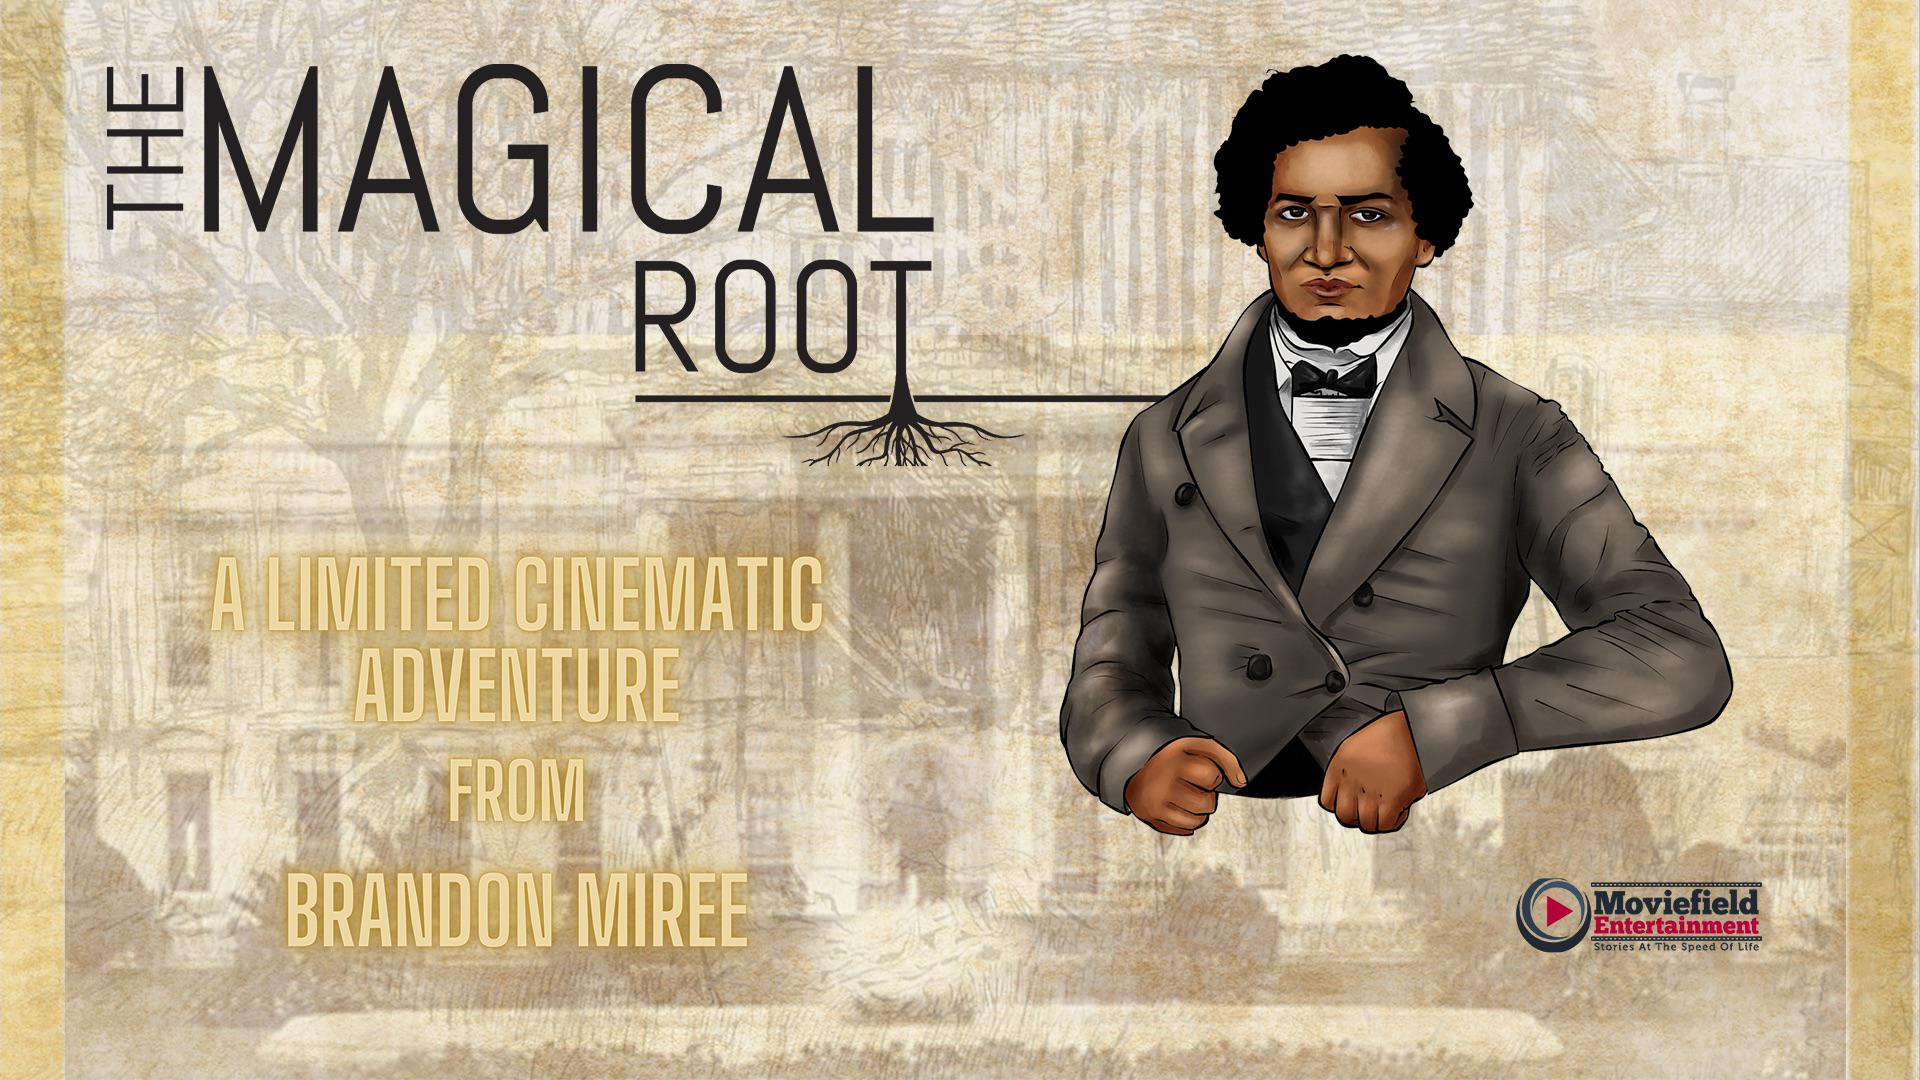 The Magical Root